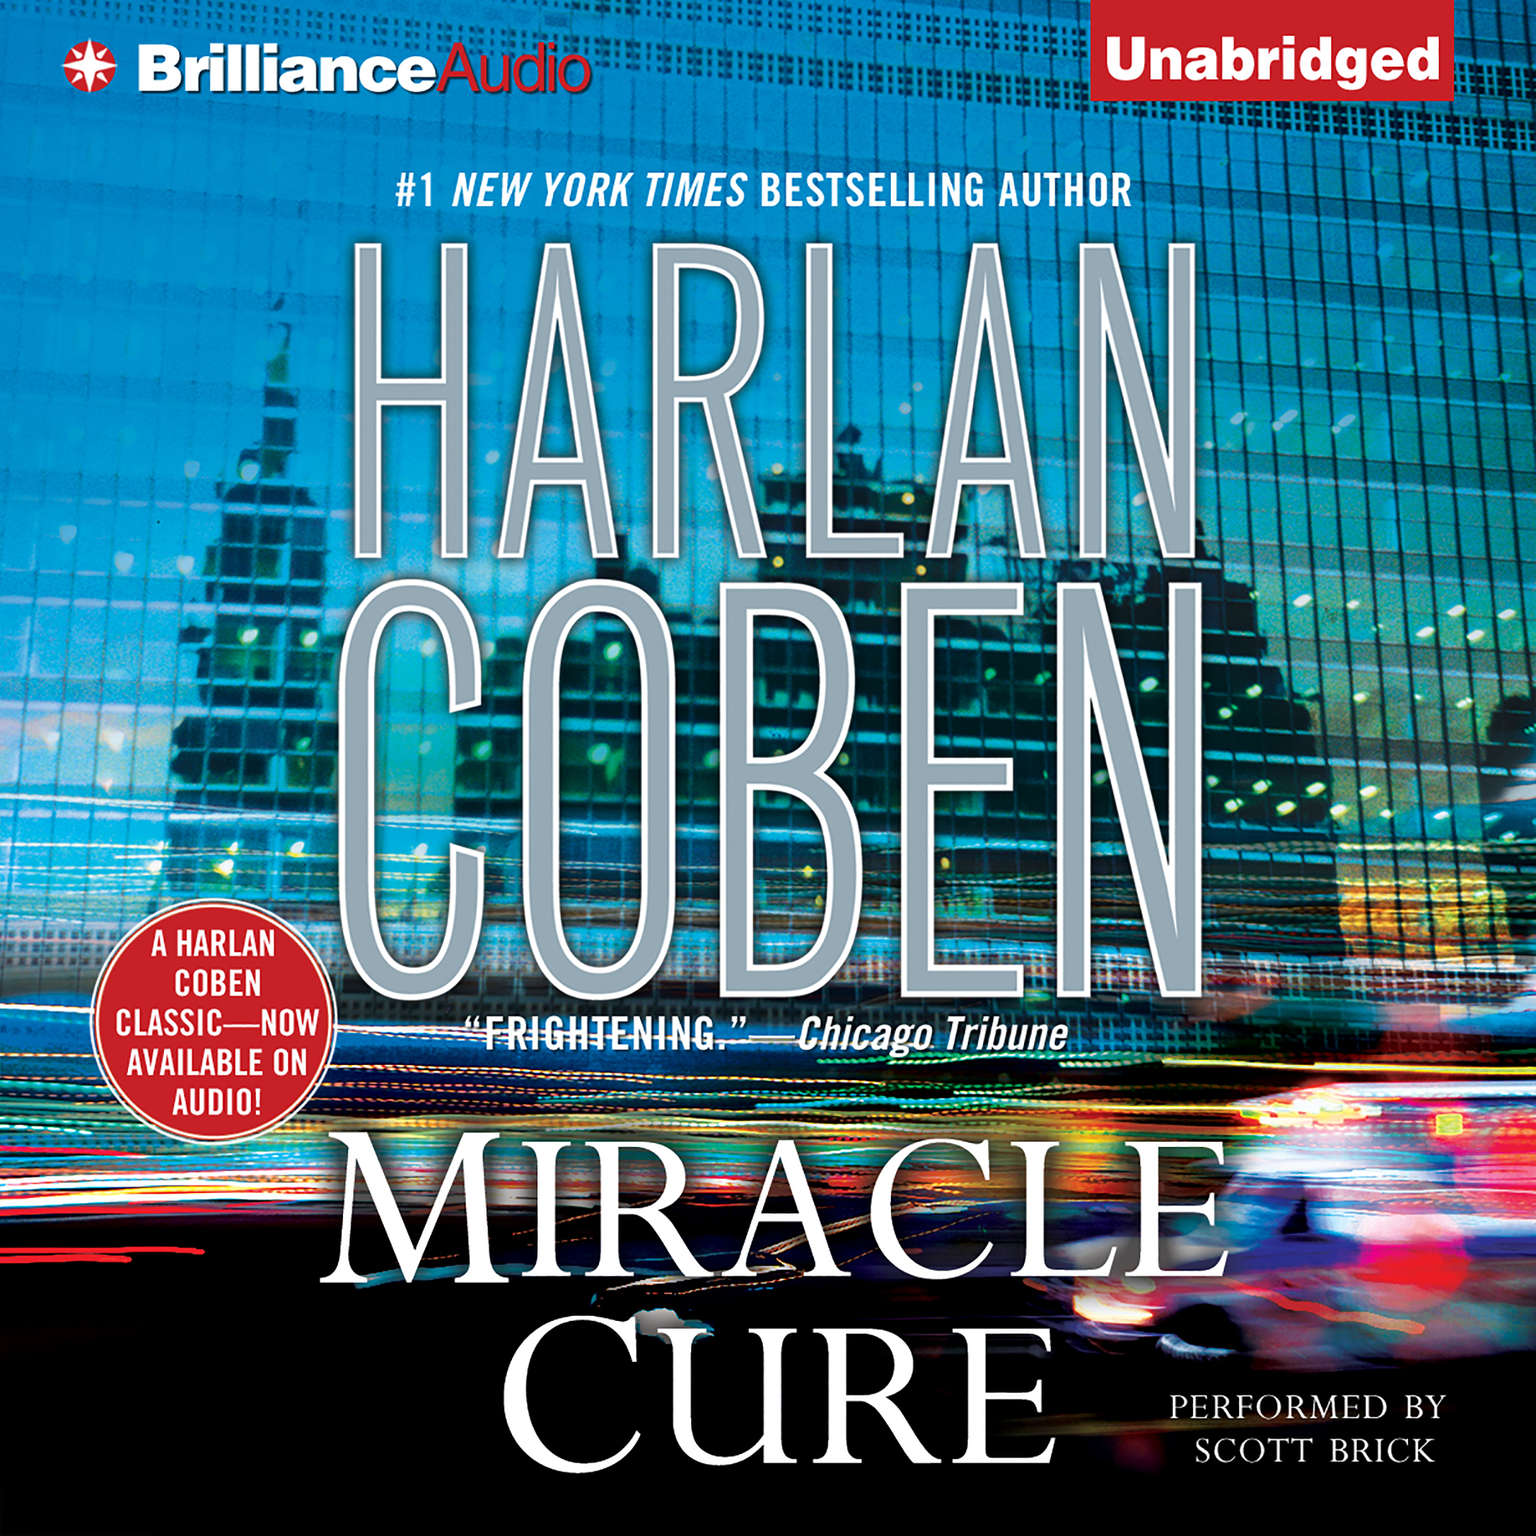 Miracle Cure - Audiobook by Harlan Coben